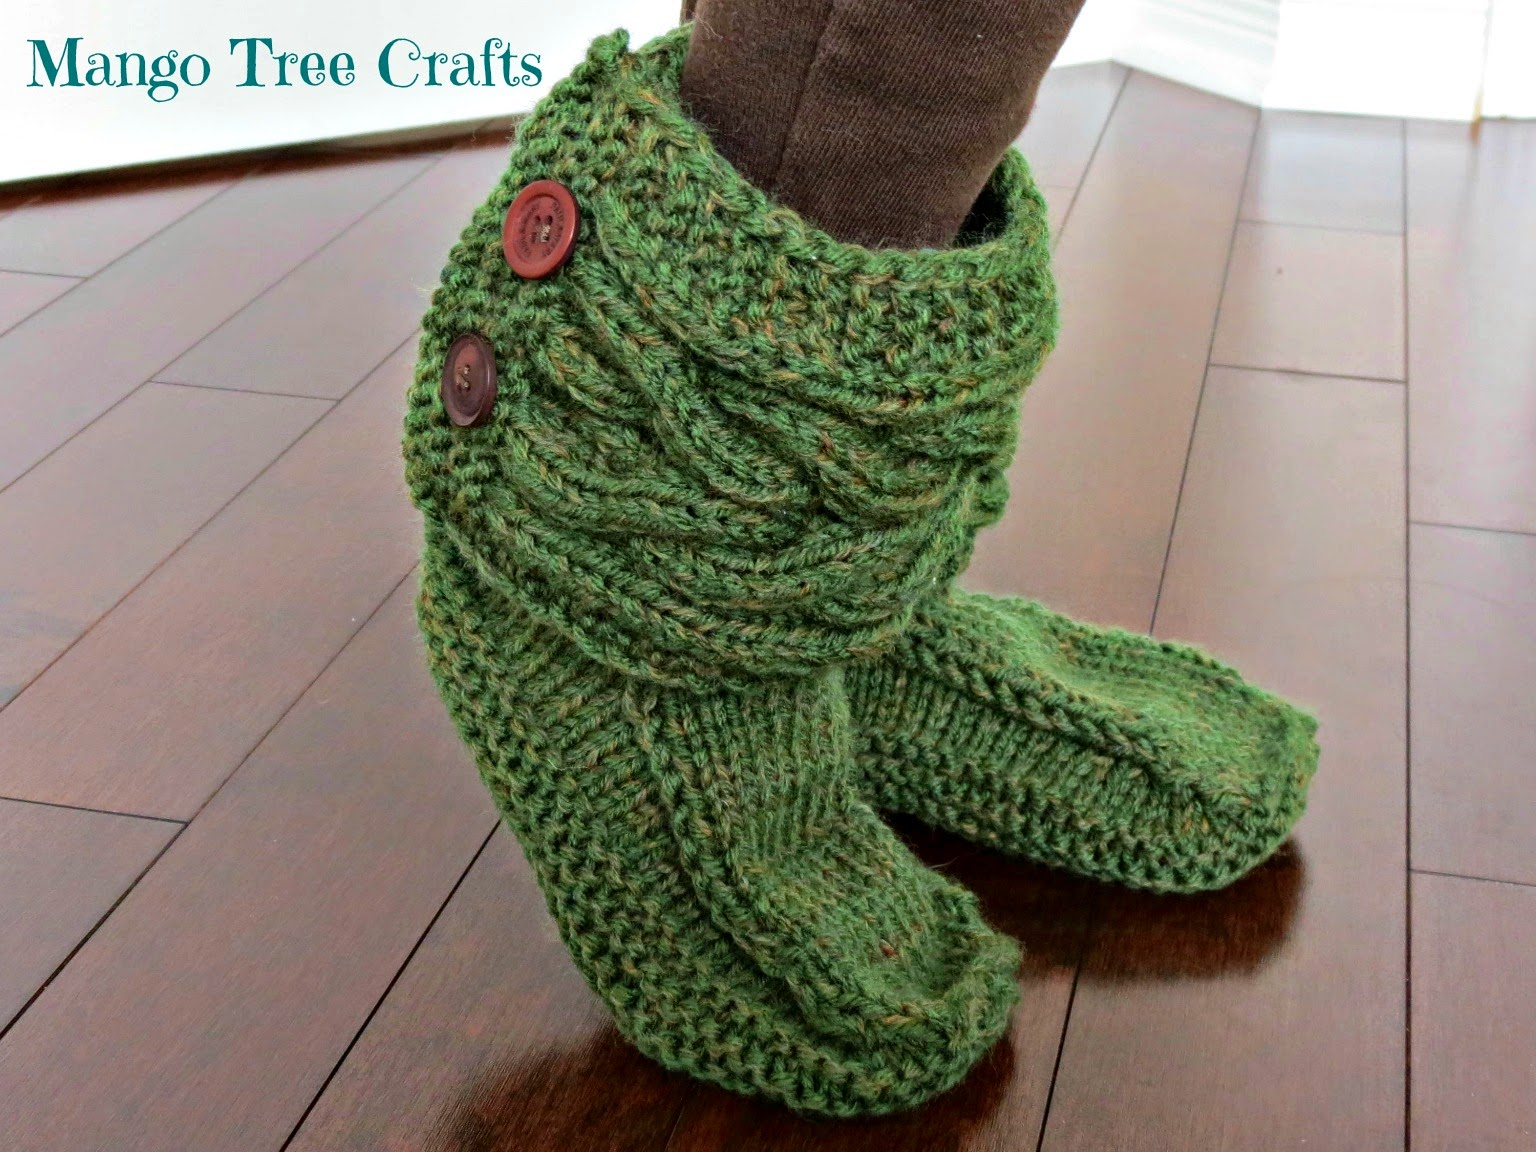 Knit Boots Pattern : Mango Tree Crafts: Knitted Slipper Boots